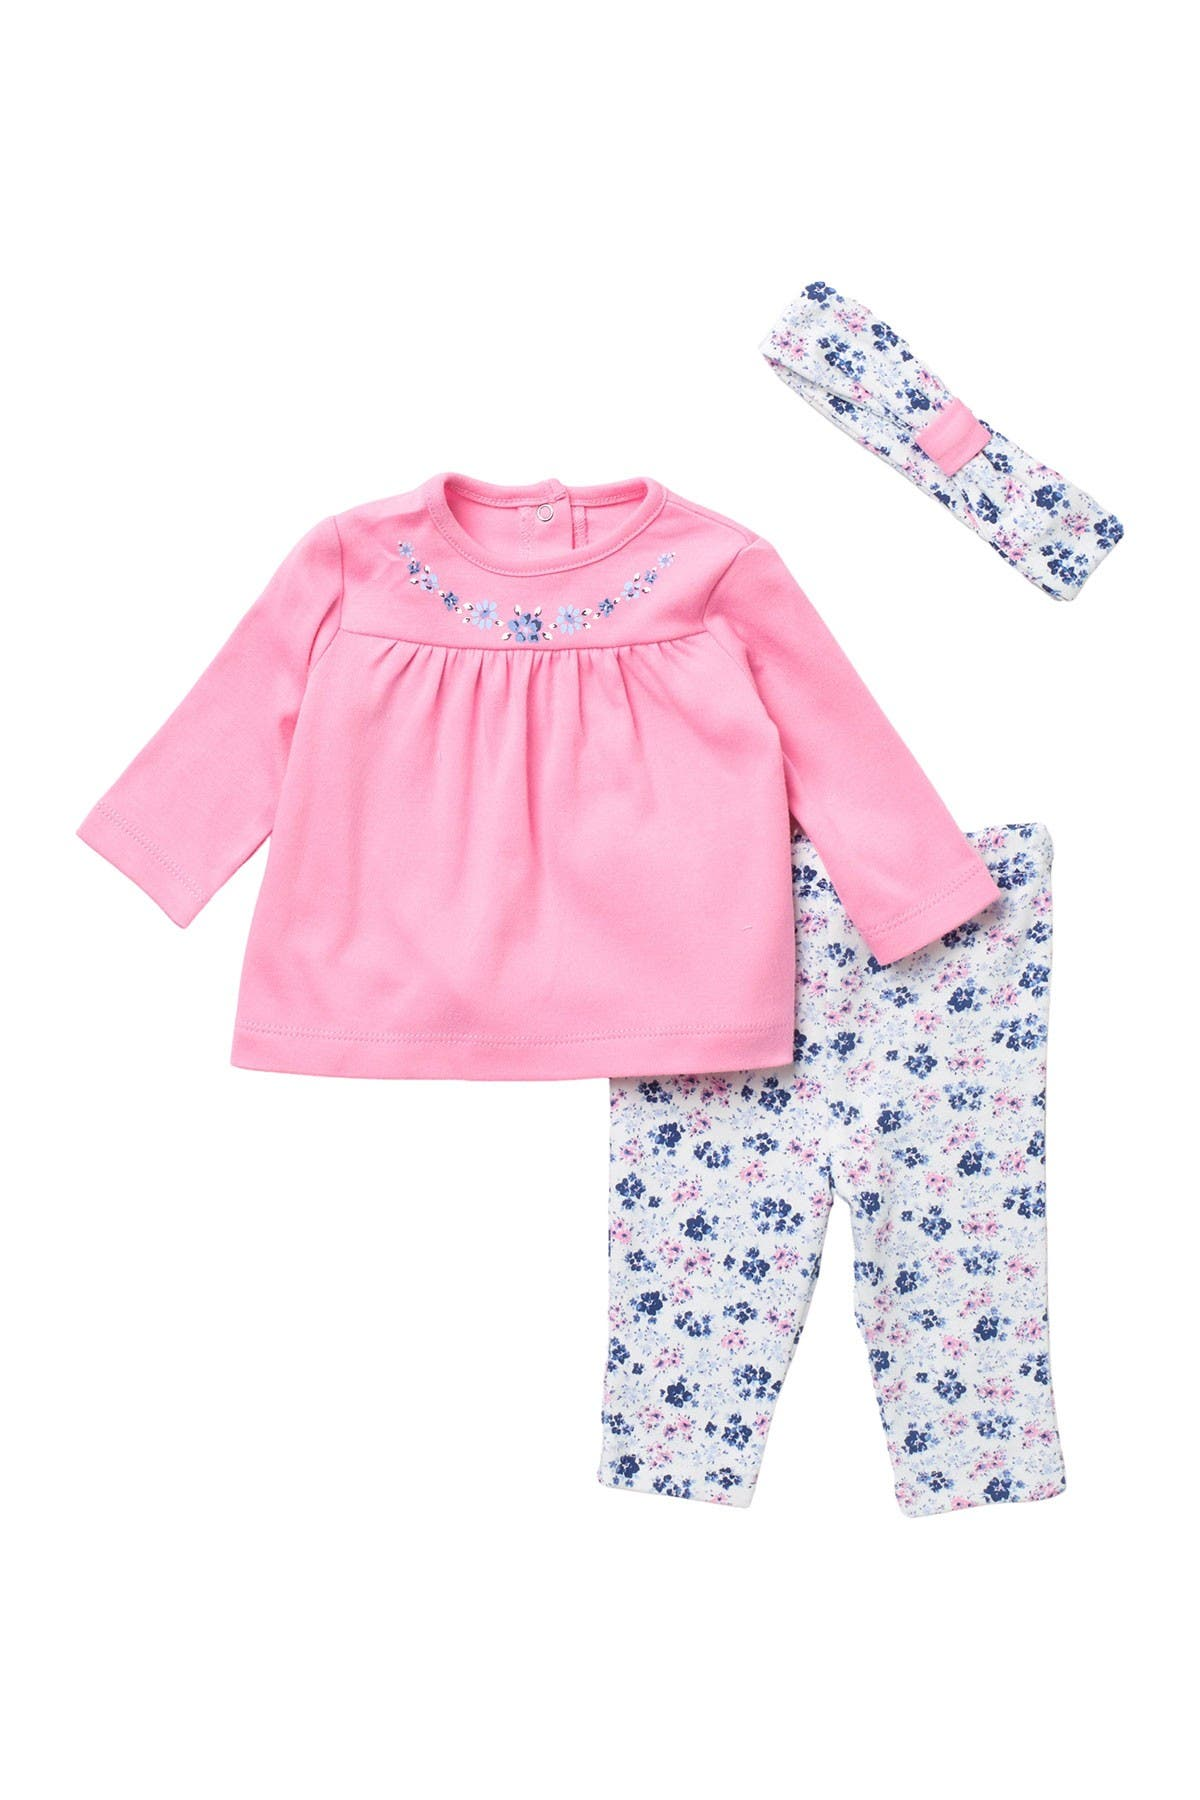 Image of Little Me Floral Cluster Headband, Tunic & Leggings Set